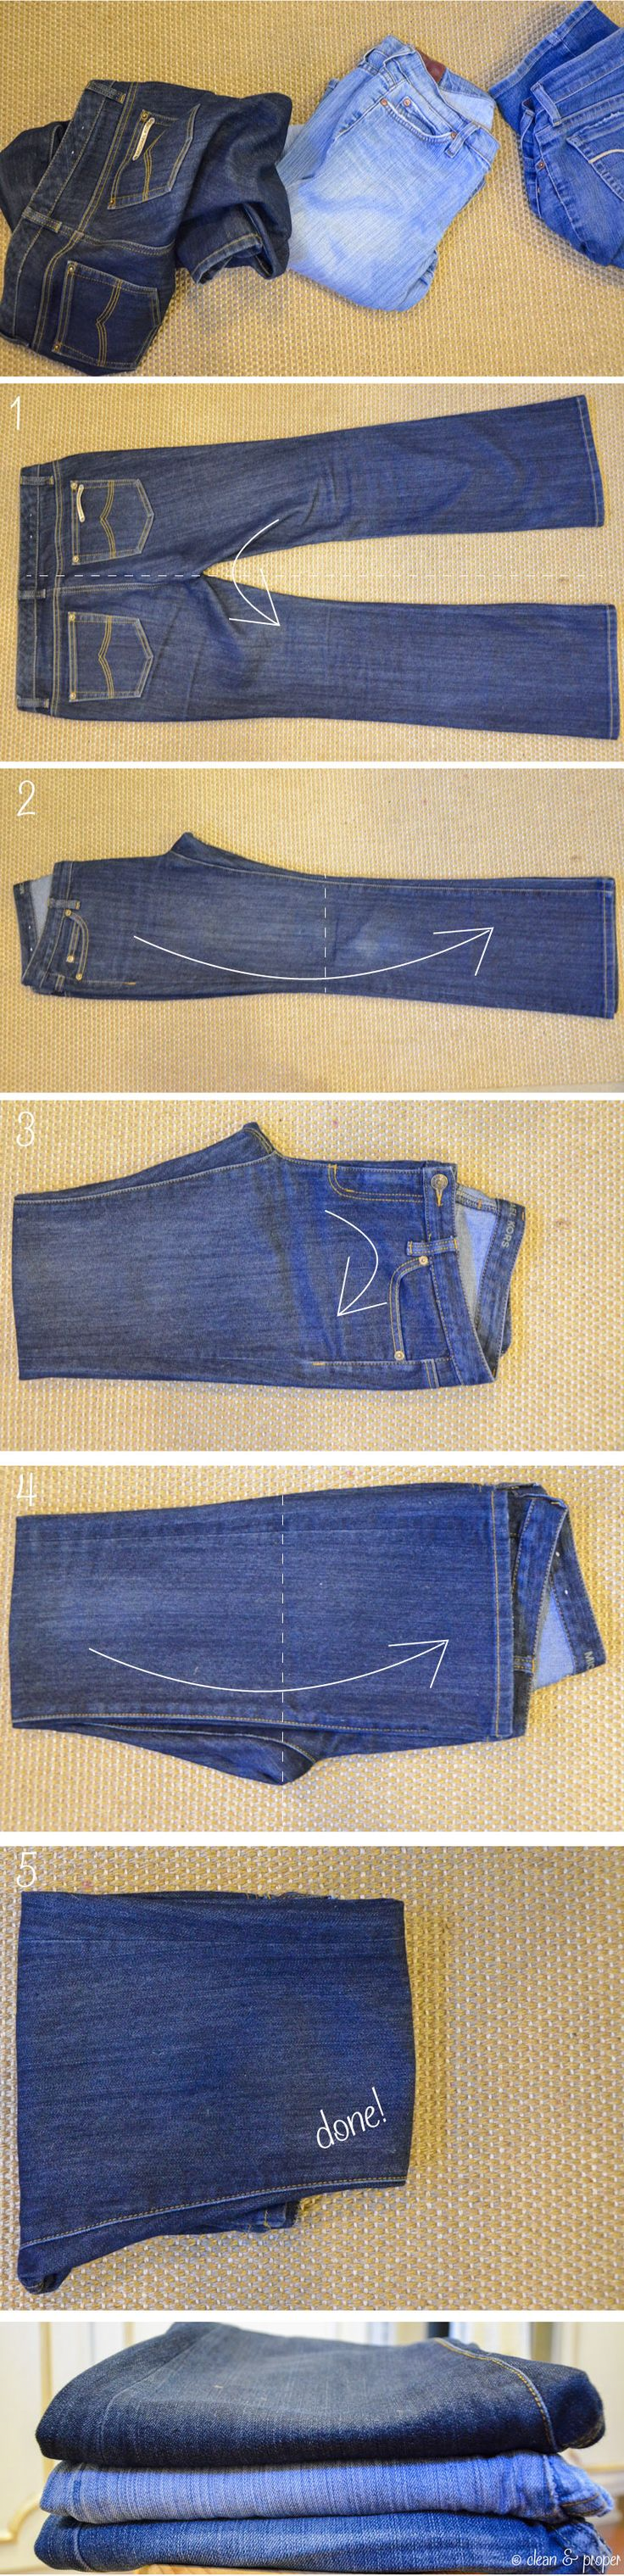 5 Steps to Folding Jeans Perfectly, every time!